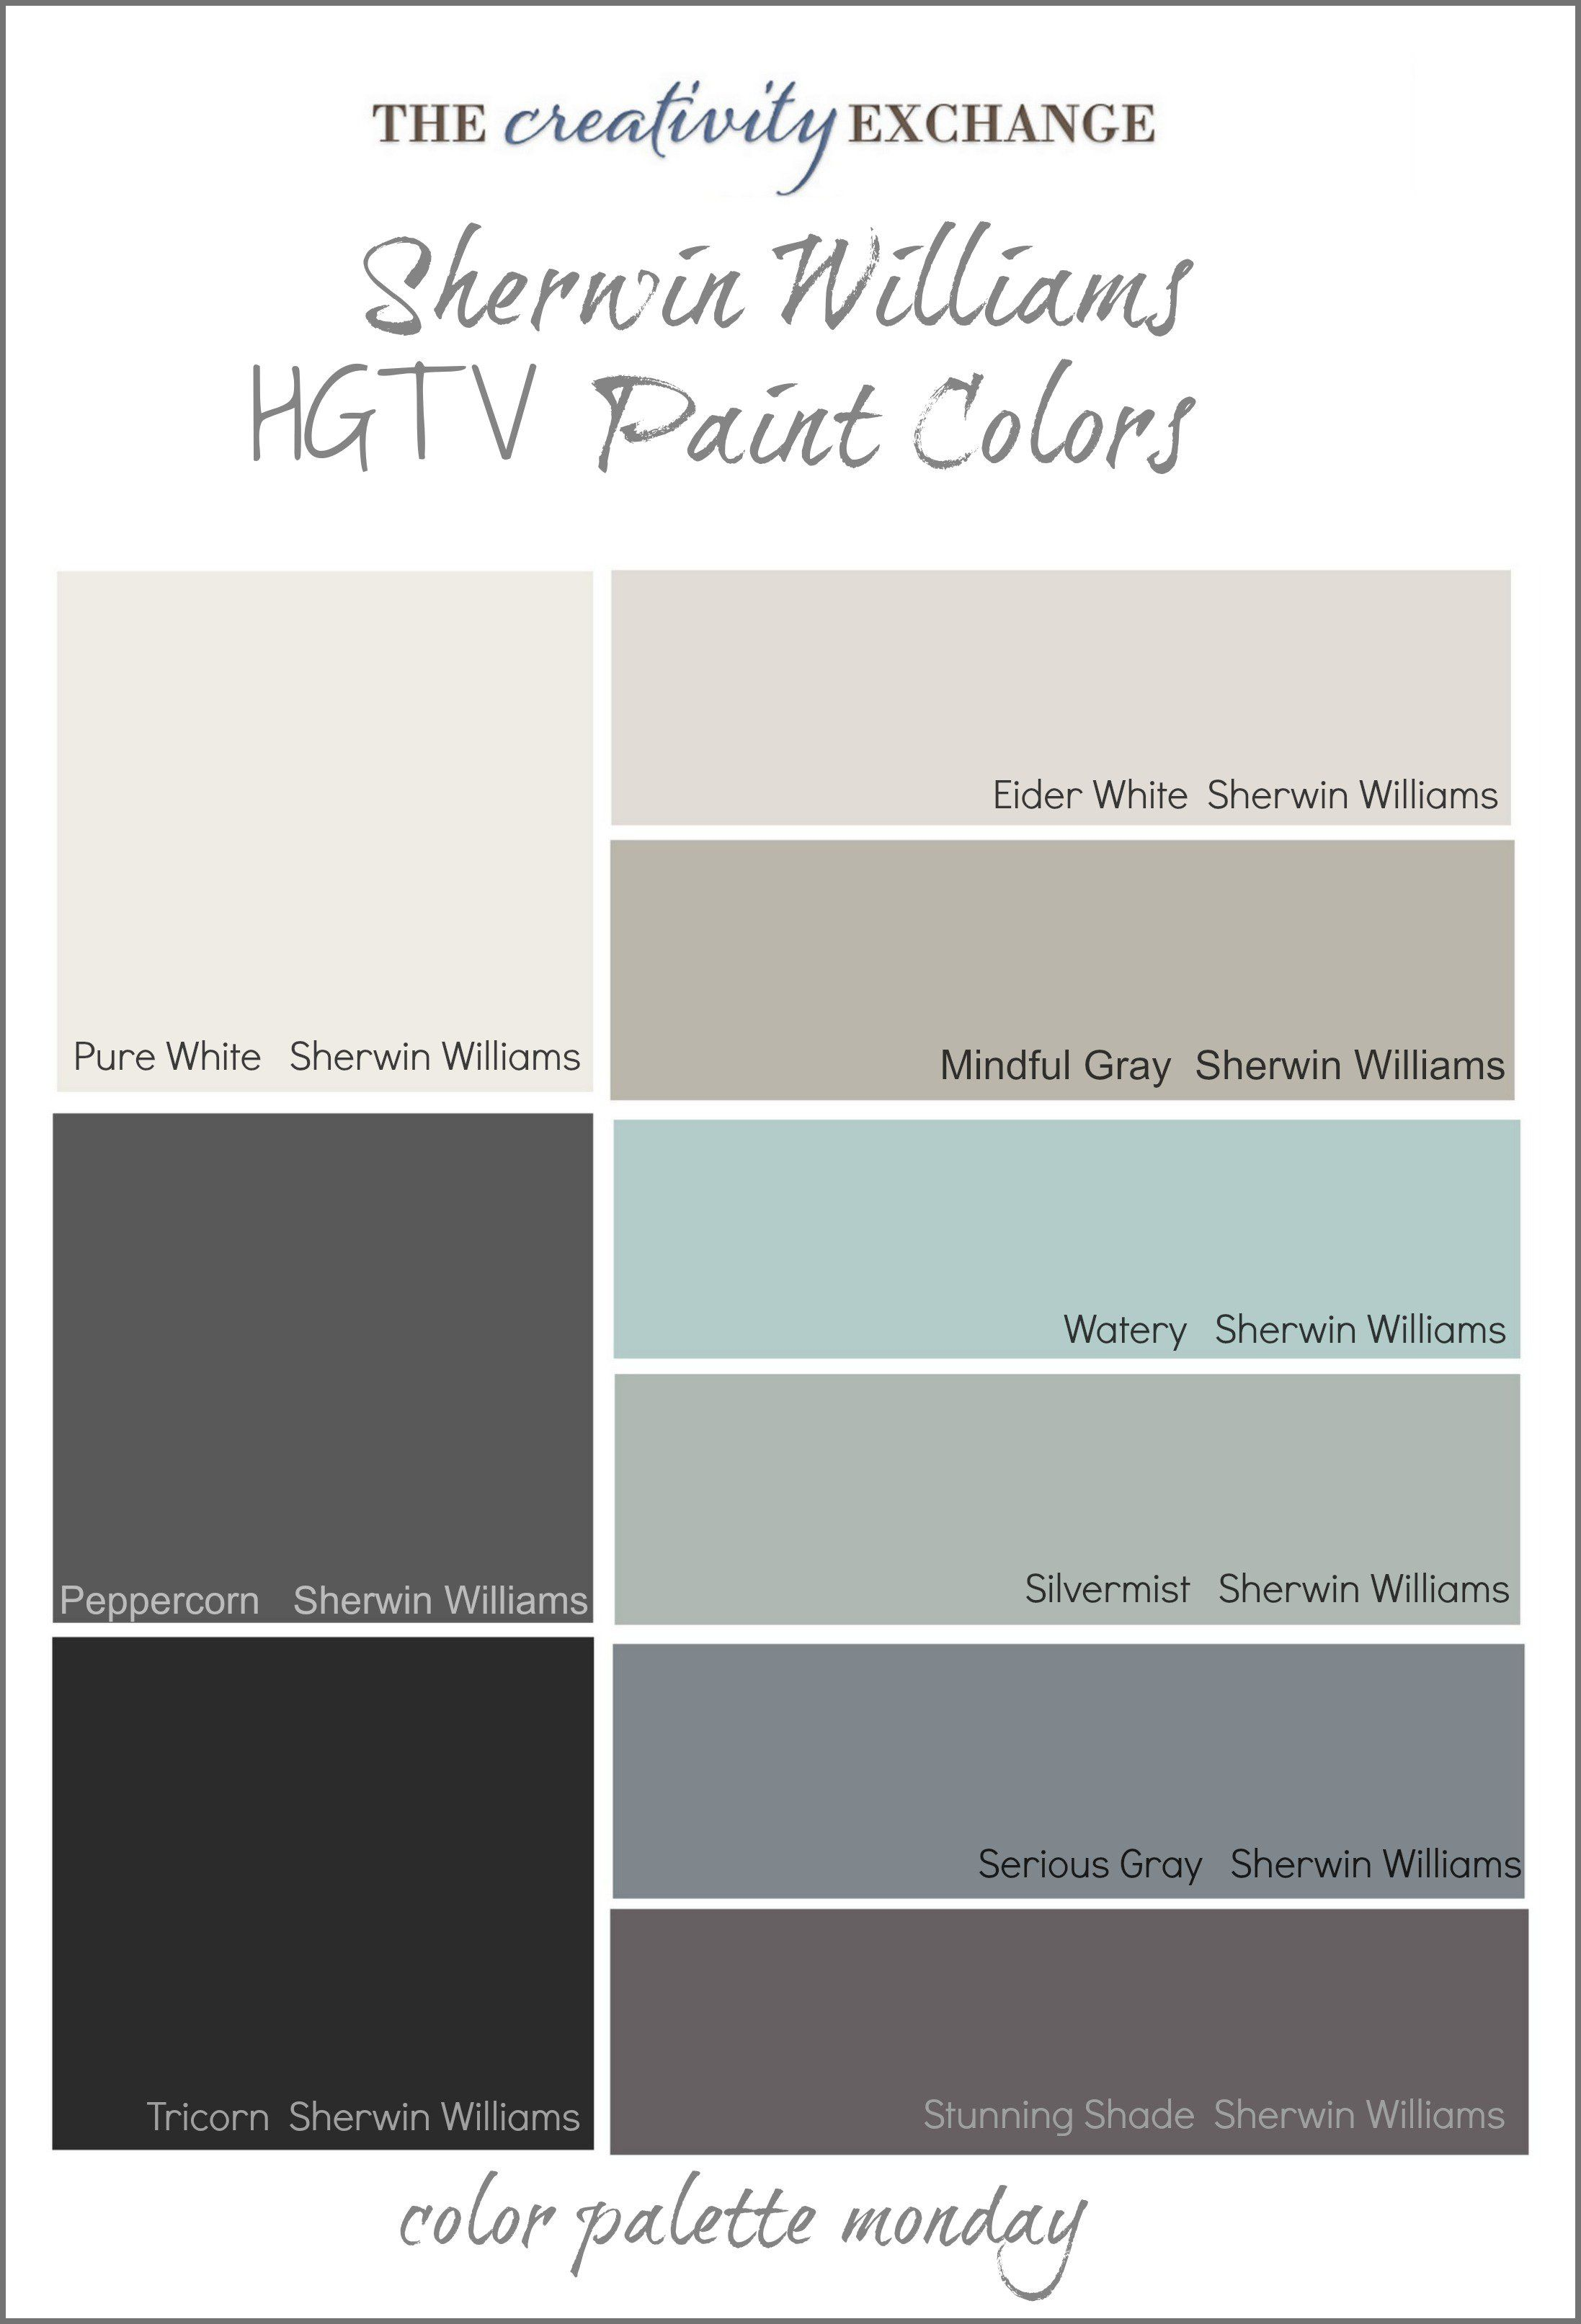 Hgtv Paint Colors From Sherwin Williams Paint Colors For Home